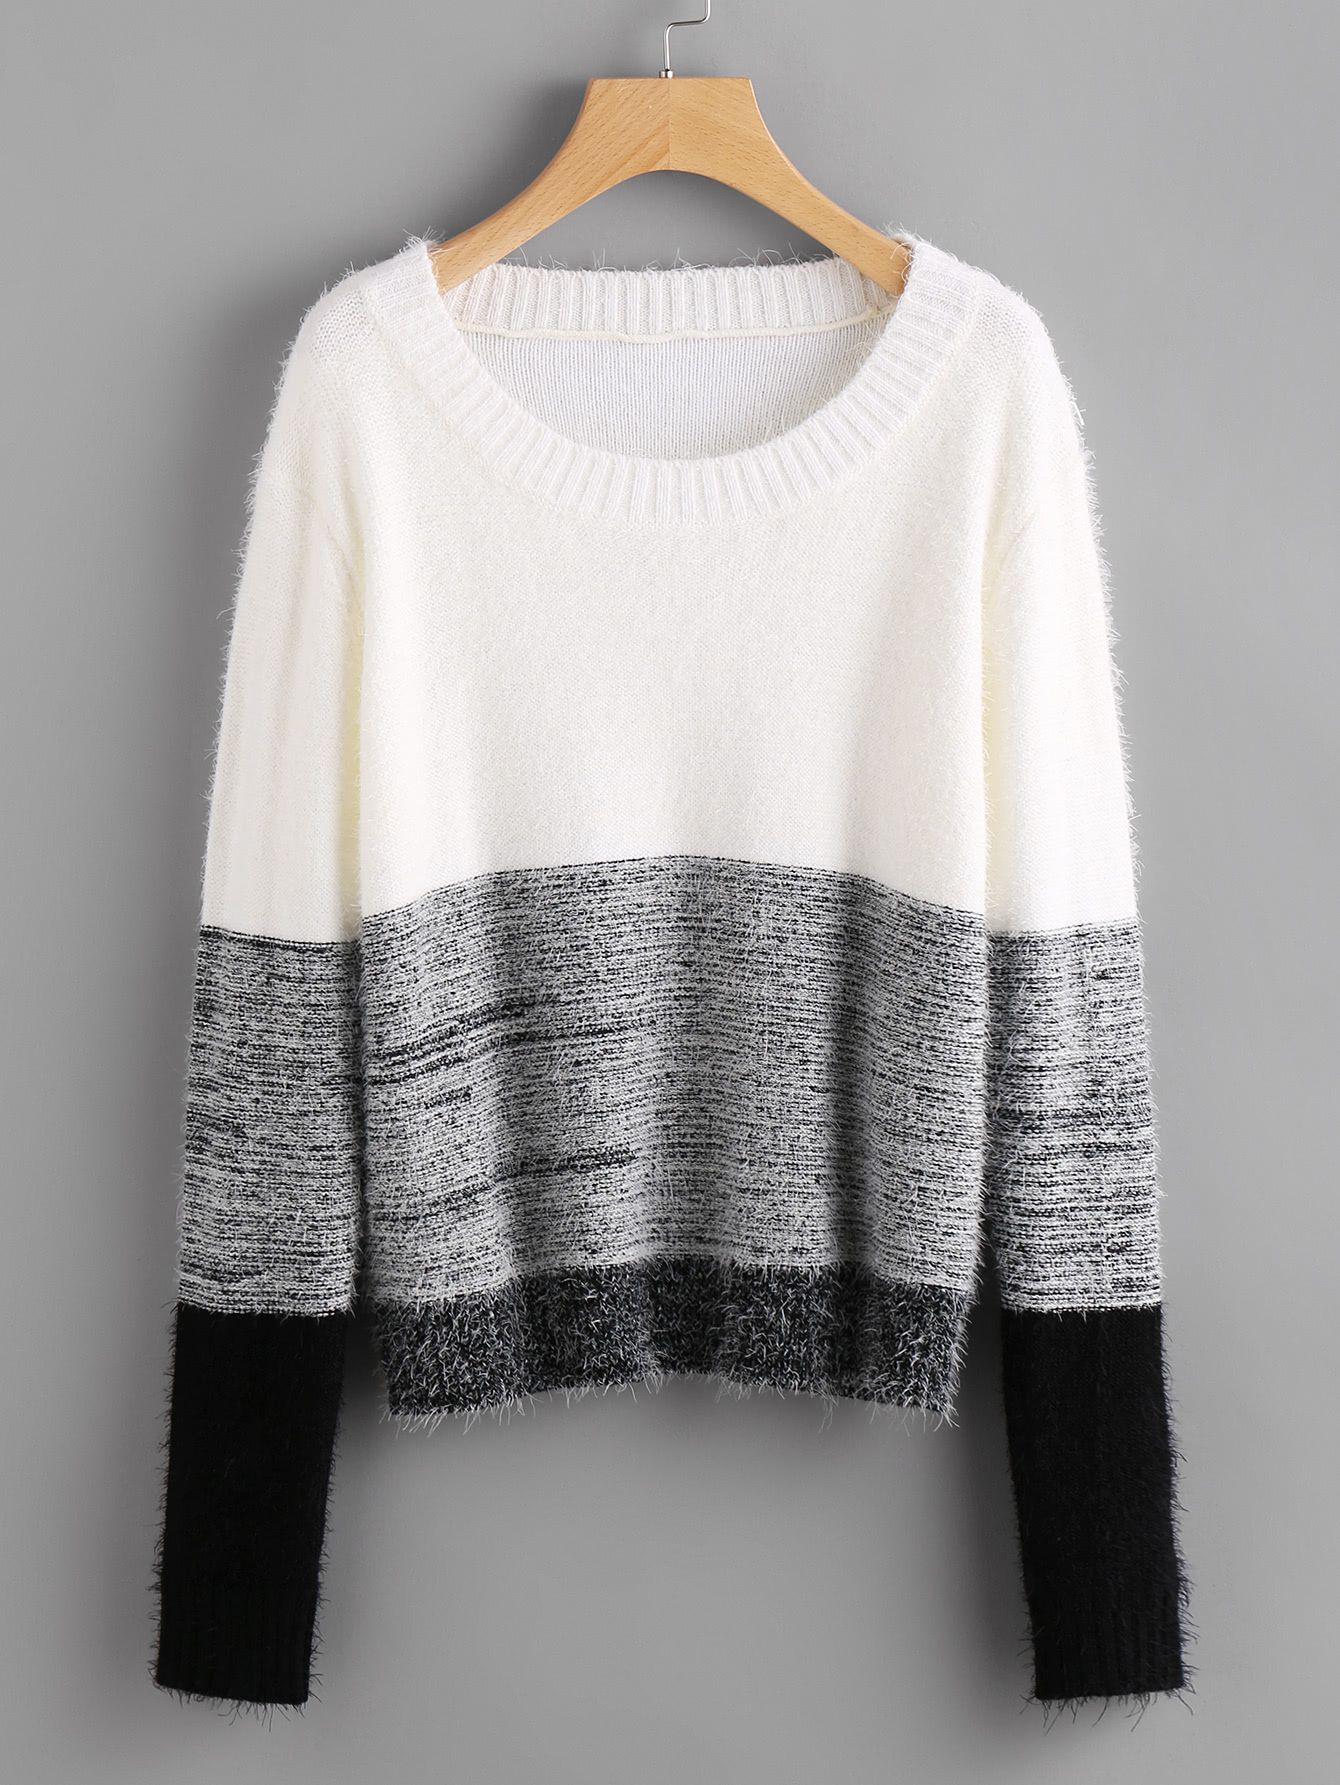 33c7d4aab7 Shop Color Block Fluffy Jumper online. SheIn offers Color Block Fluffy  Jumper & more to fit your fashionable needs.